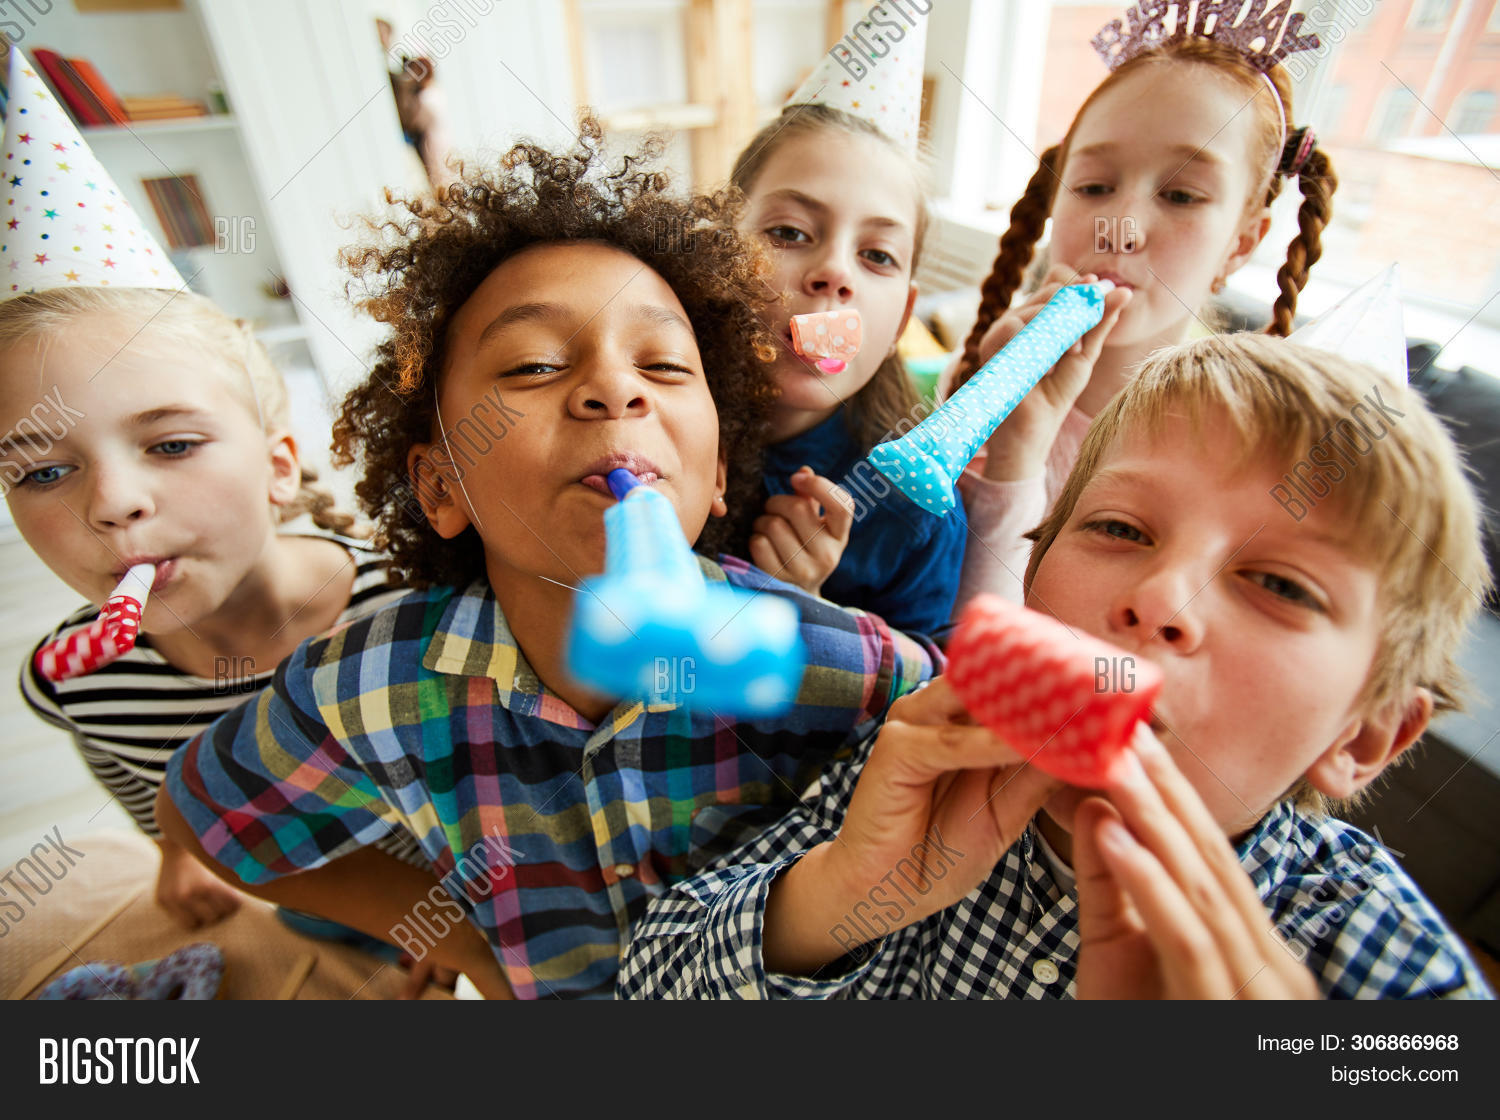 High Angle View At Multi Ethnic Group Of Children Blowing Party Horns At Camera